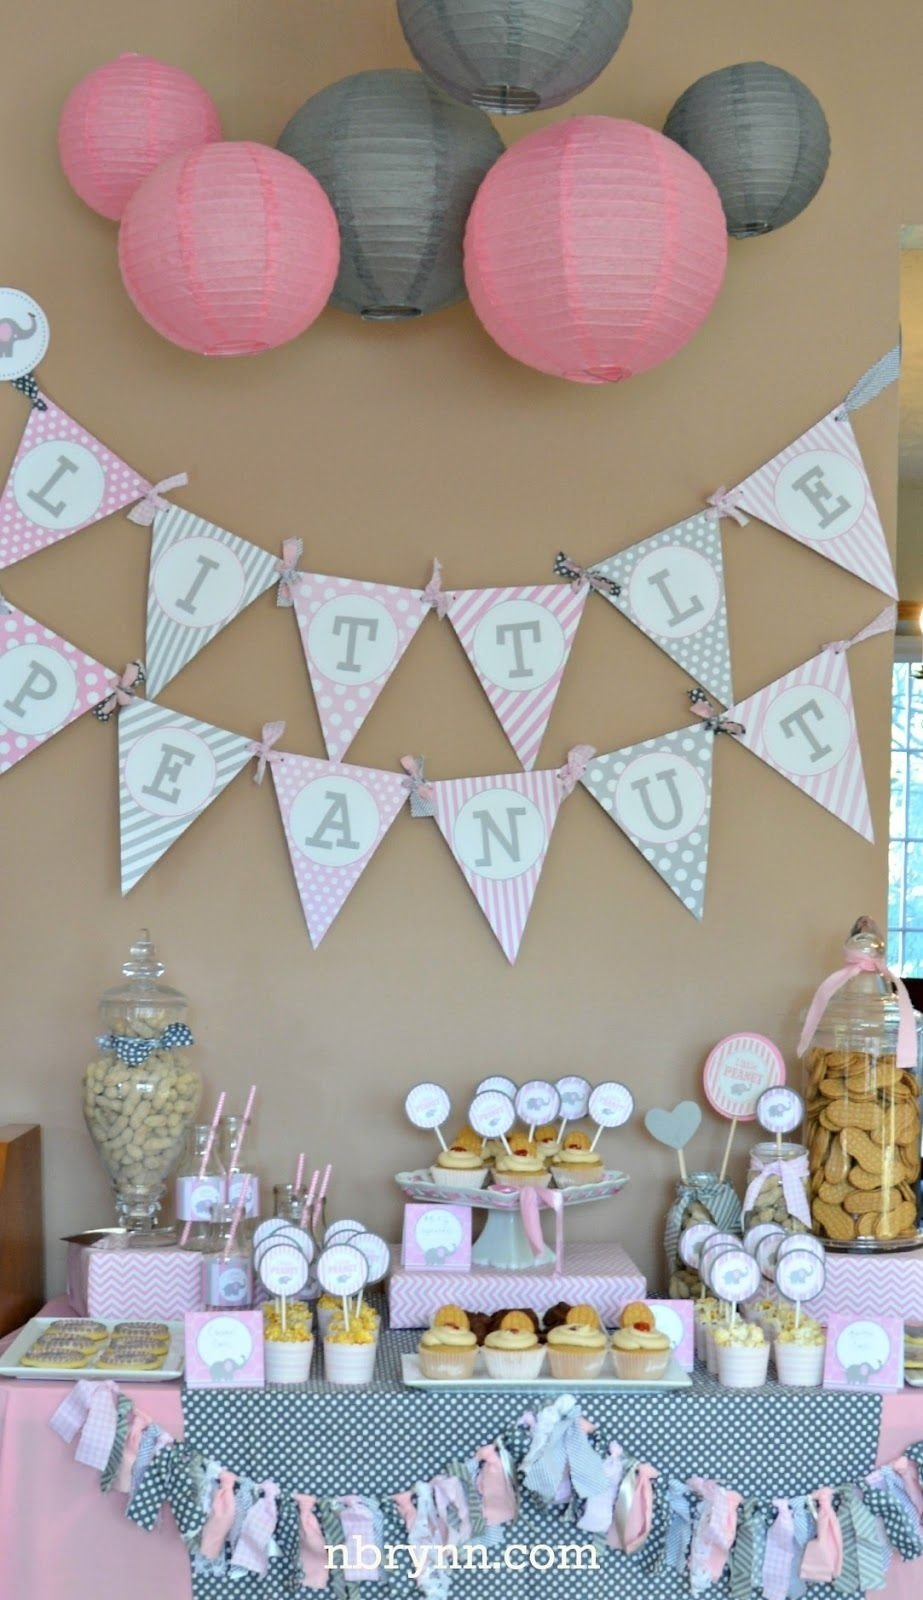 10 Pretty Ideas For A Baby Shower For A Girl nbrynn little peanut baby shower party ideas pinterest peanut 1 2021